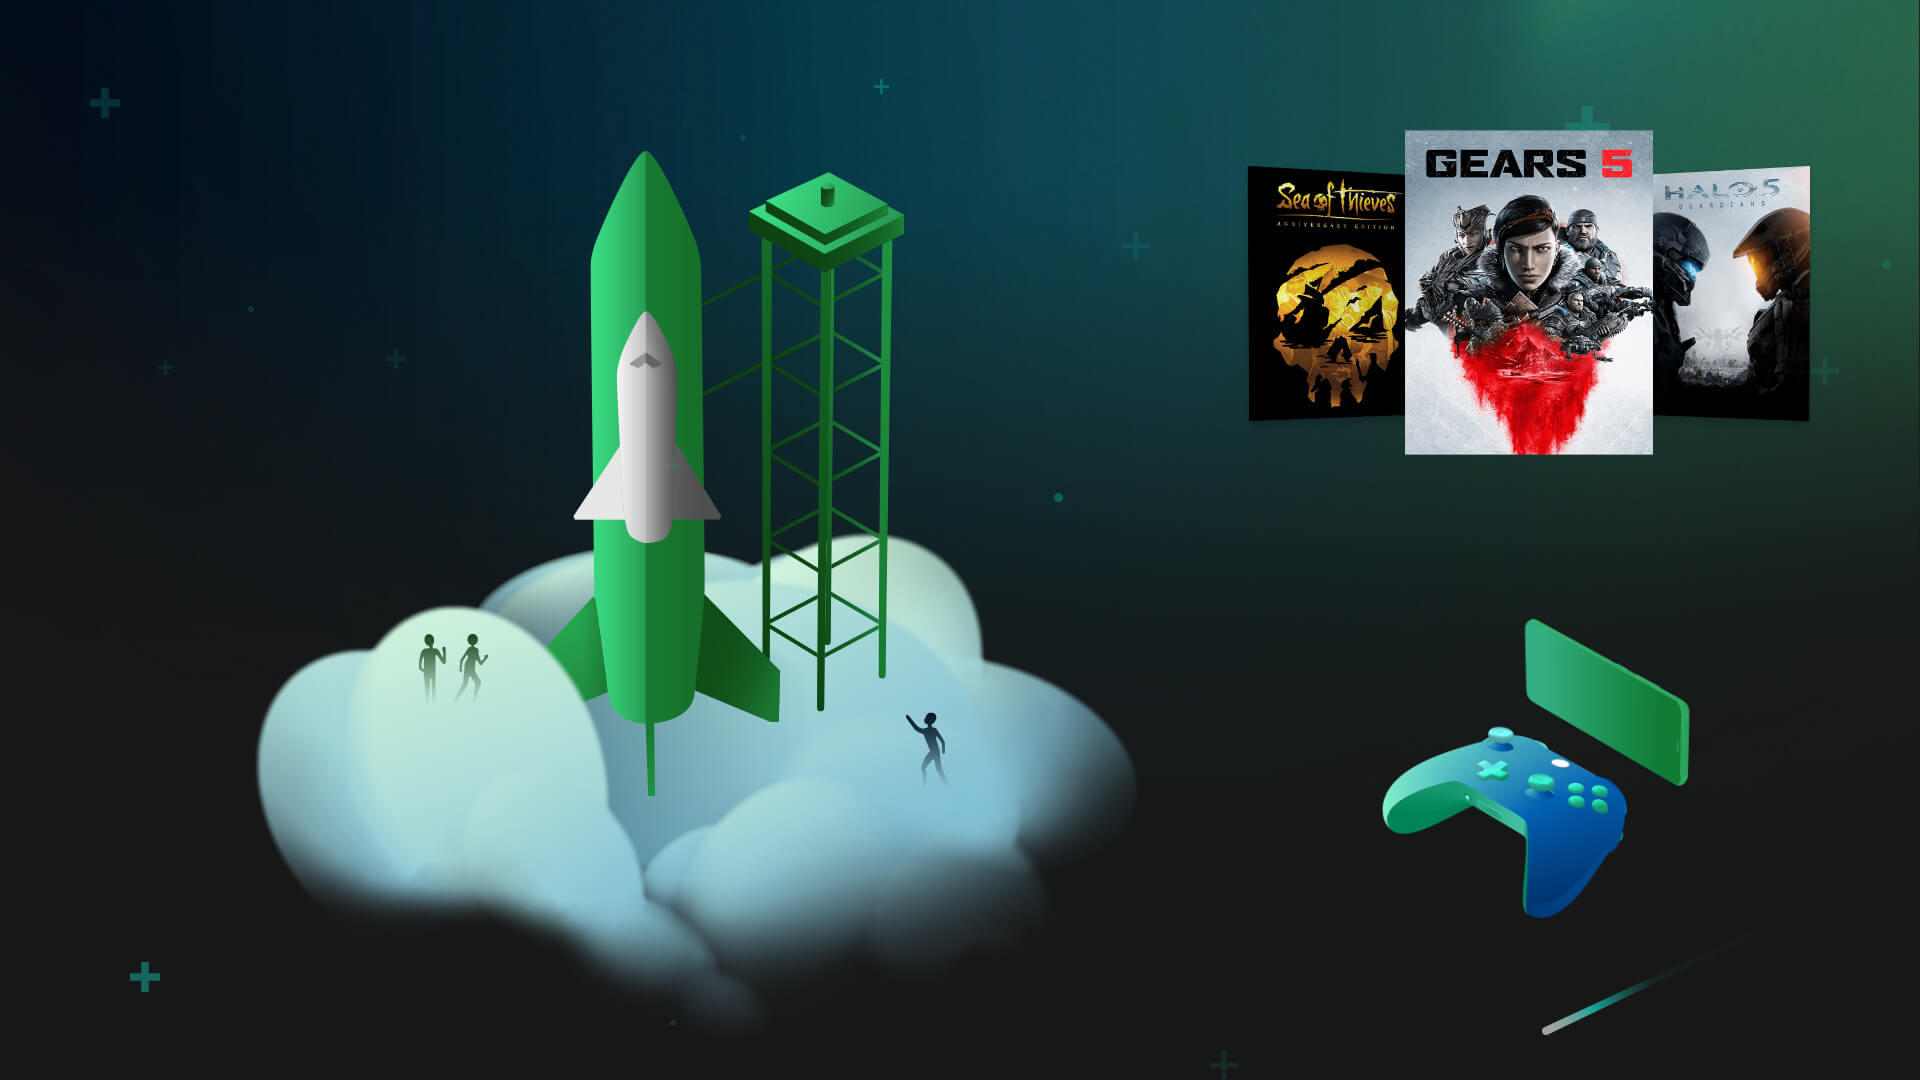 Microsoft's xCloud game streaming preview goes live with free access to four games